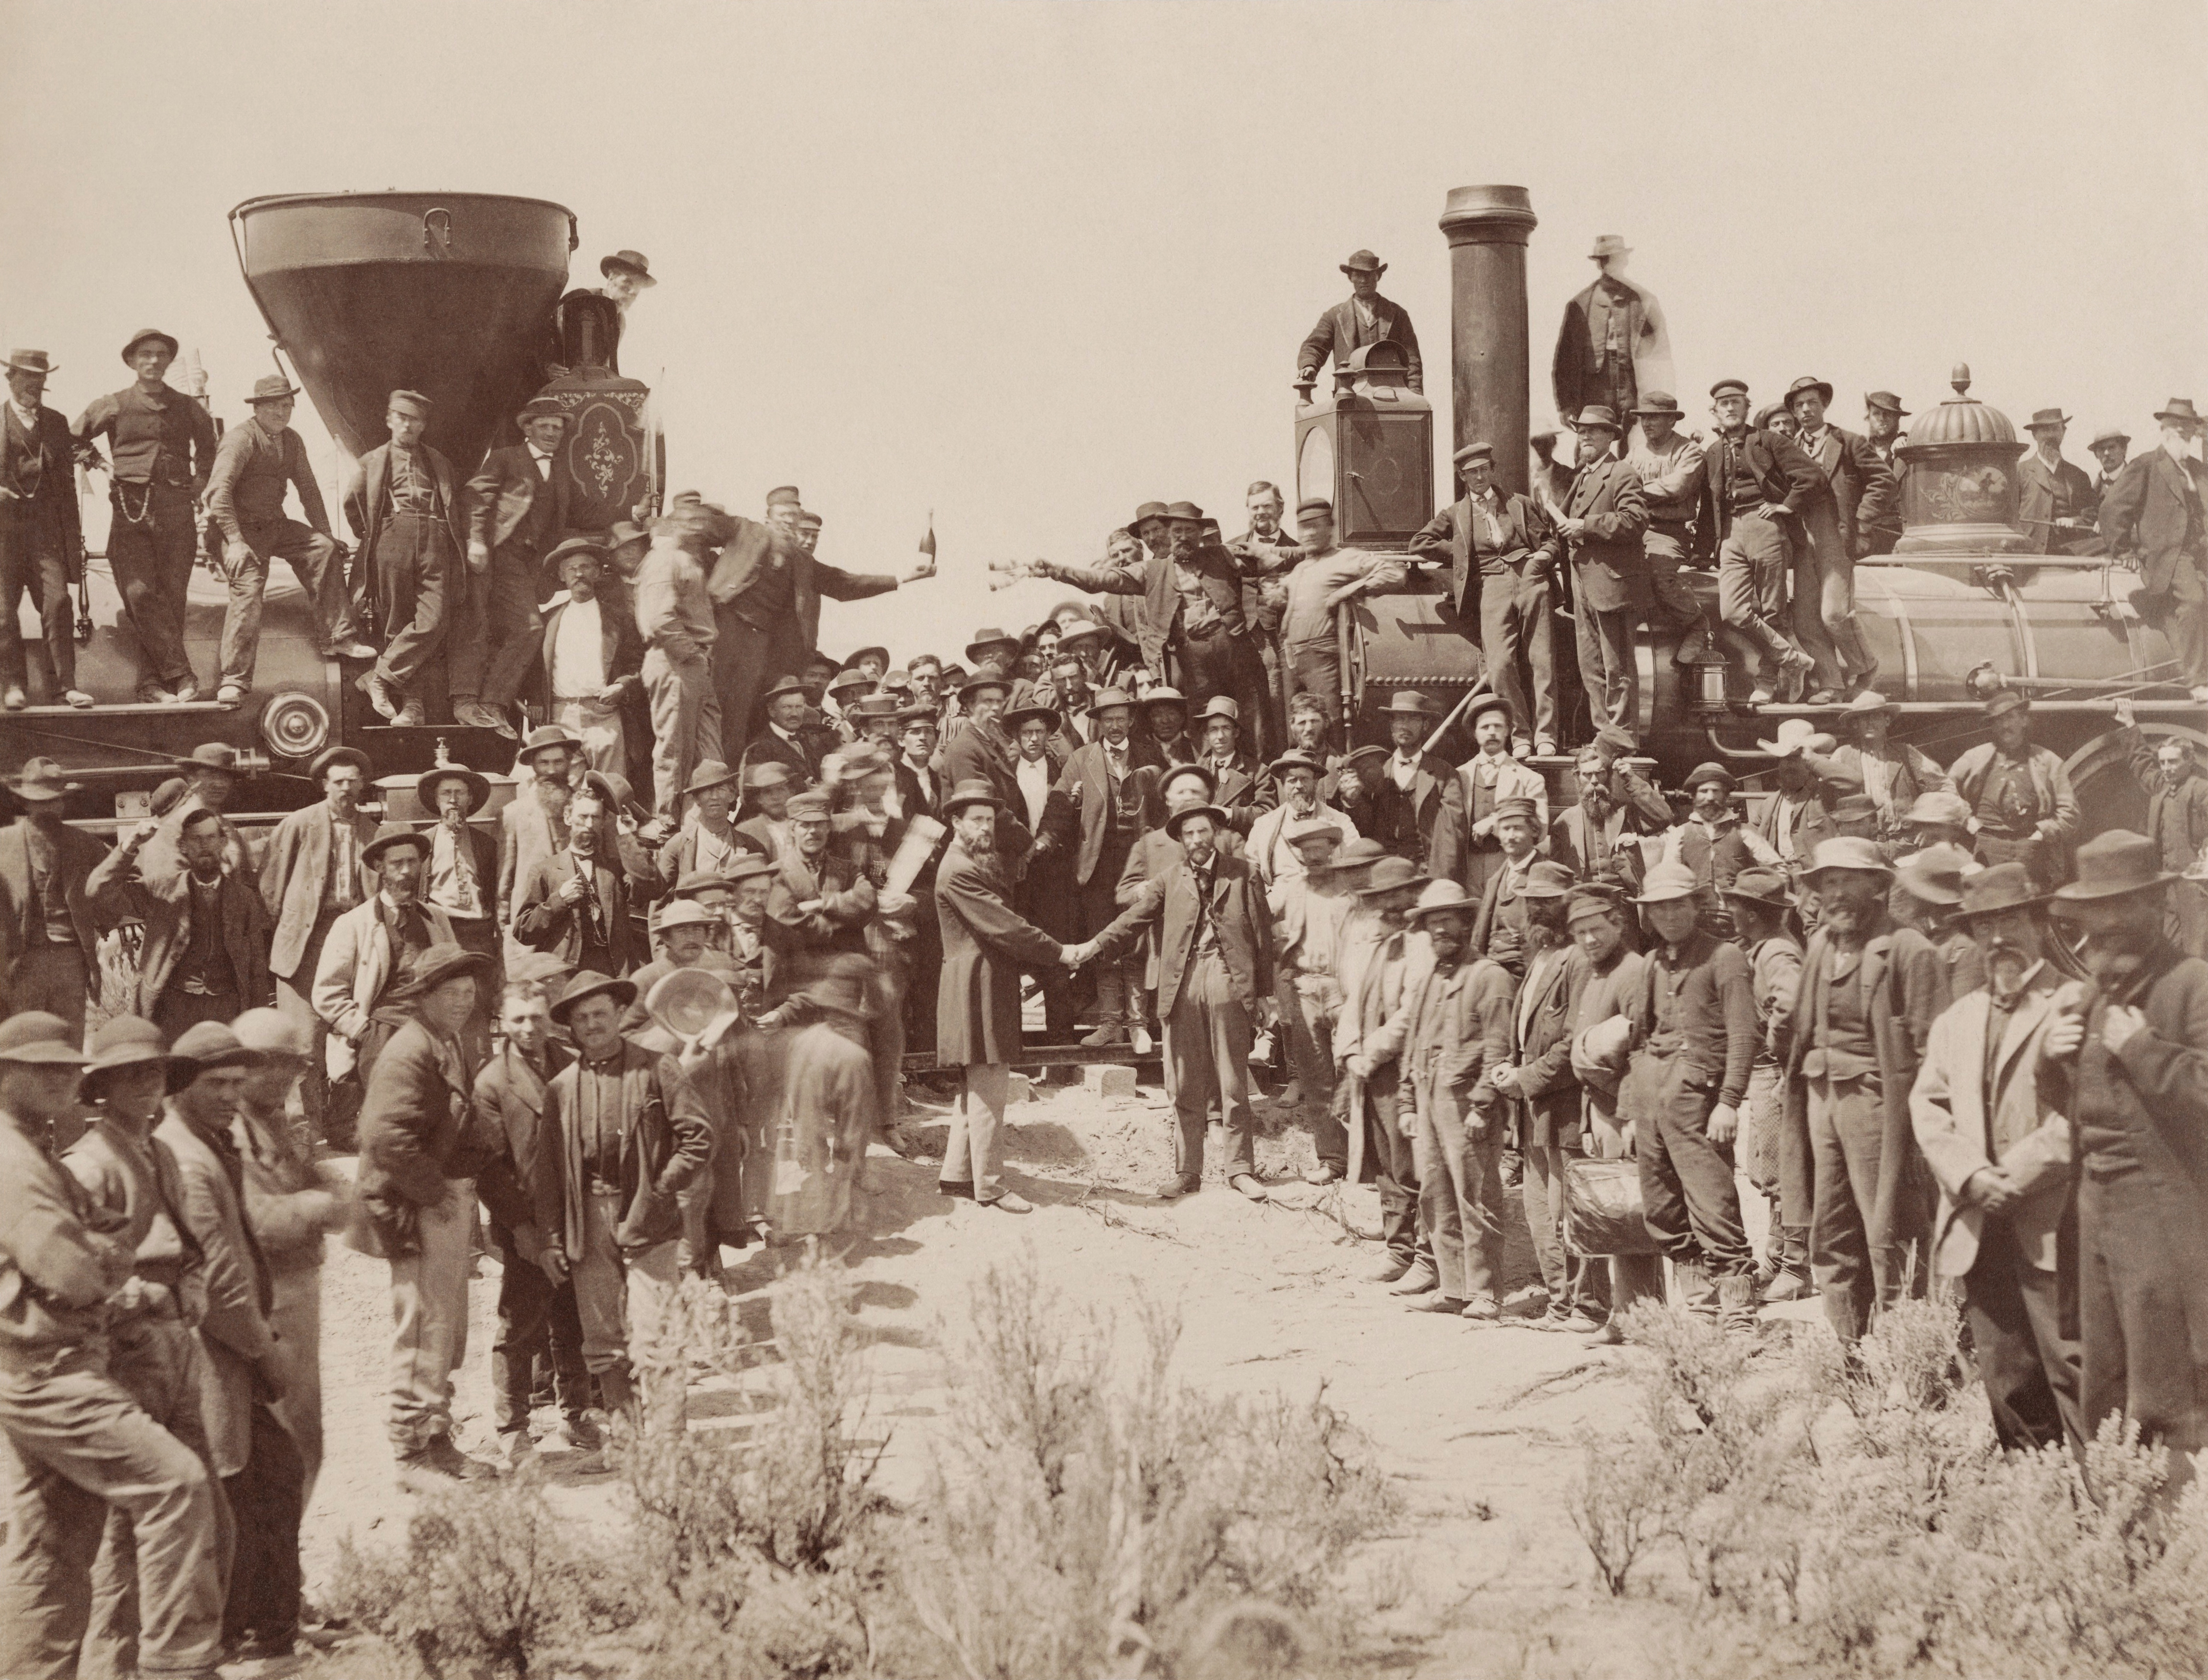 The ceremony for the driving of the golden spike at Promontory Summit, Utah on May 10, 1869; completion of the First Transcontinental Railroad. At center left, Samuel S. Montague, Central Pacific Railroad, shakes hands with Grenville M. Dodge, Union Pacific Railroad (center right).